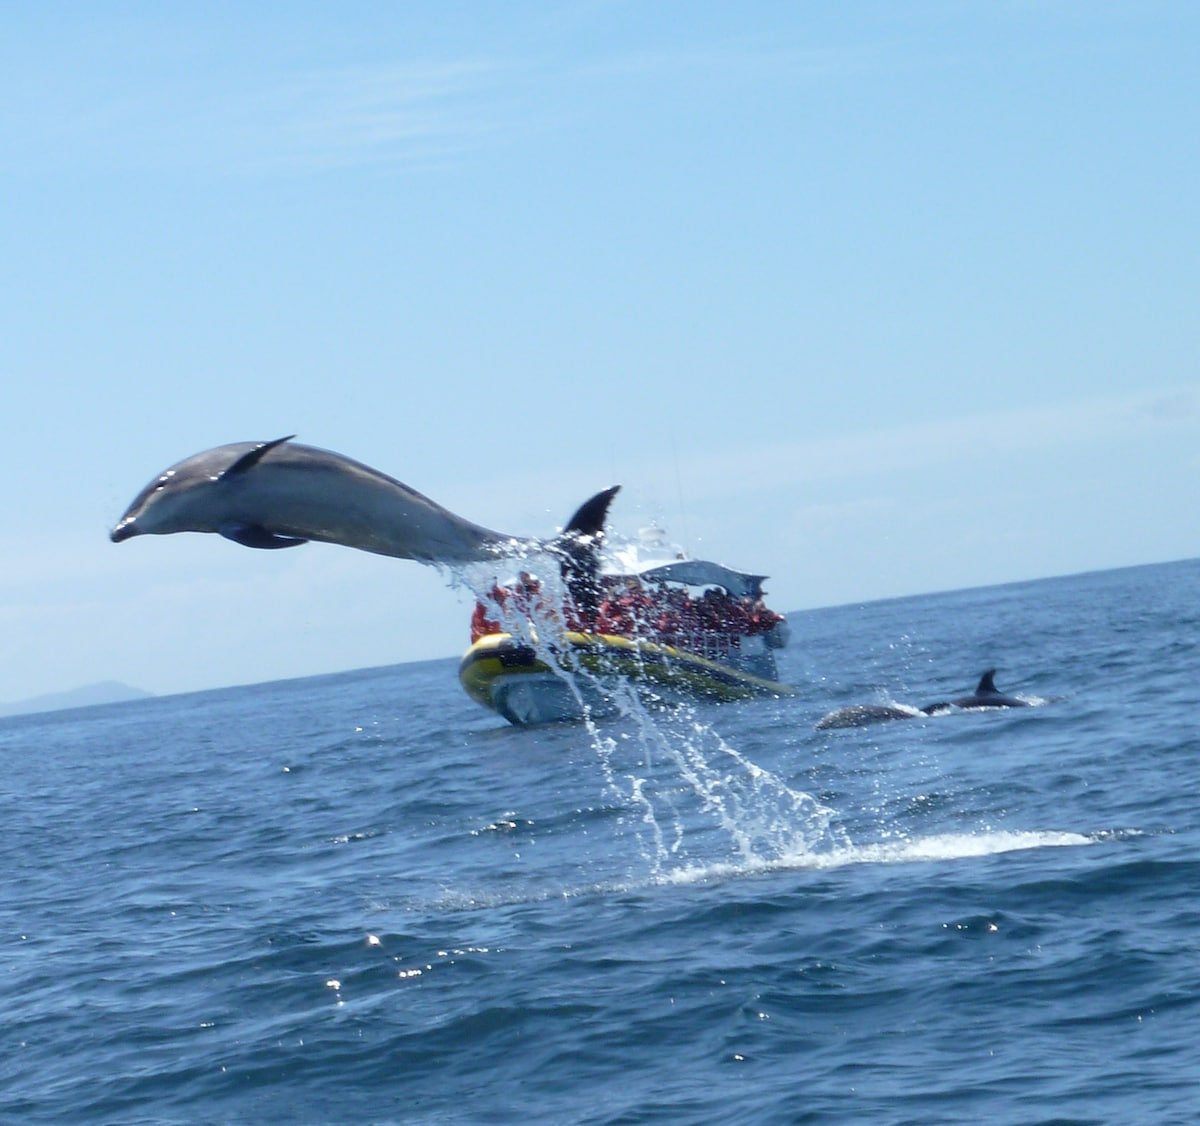 Taken by one of our guests on a Bruny Island Boat Cruise